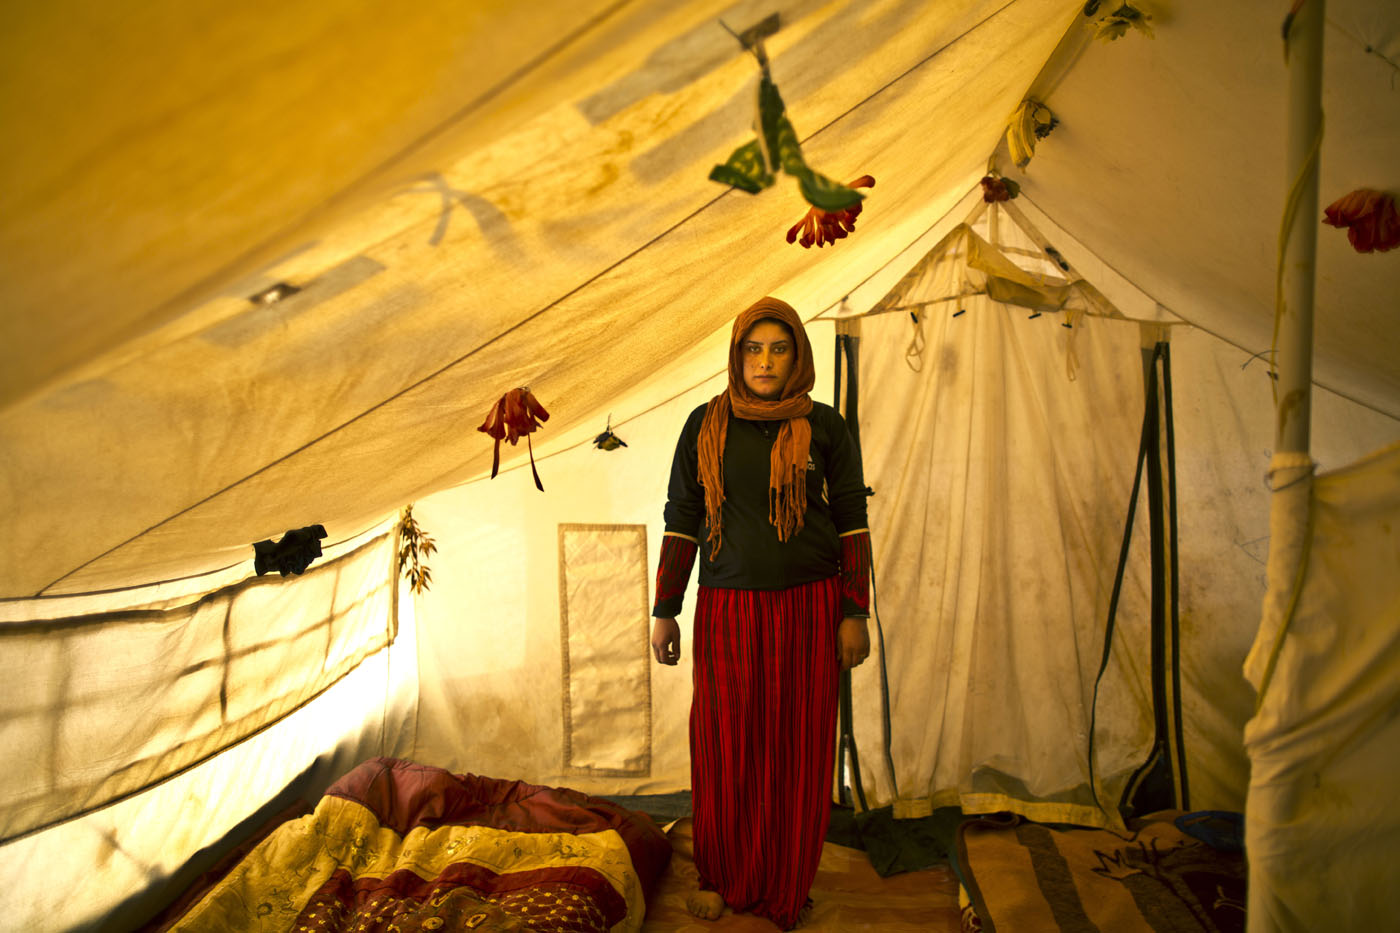 Being pregnant in makeshift tent camps